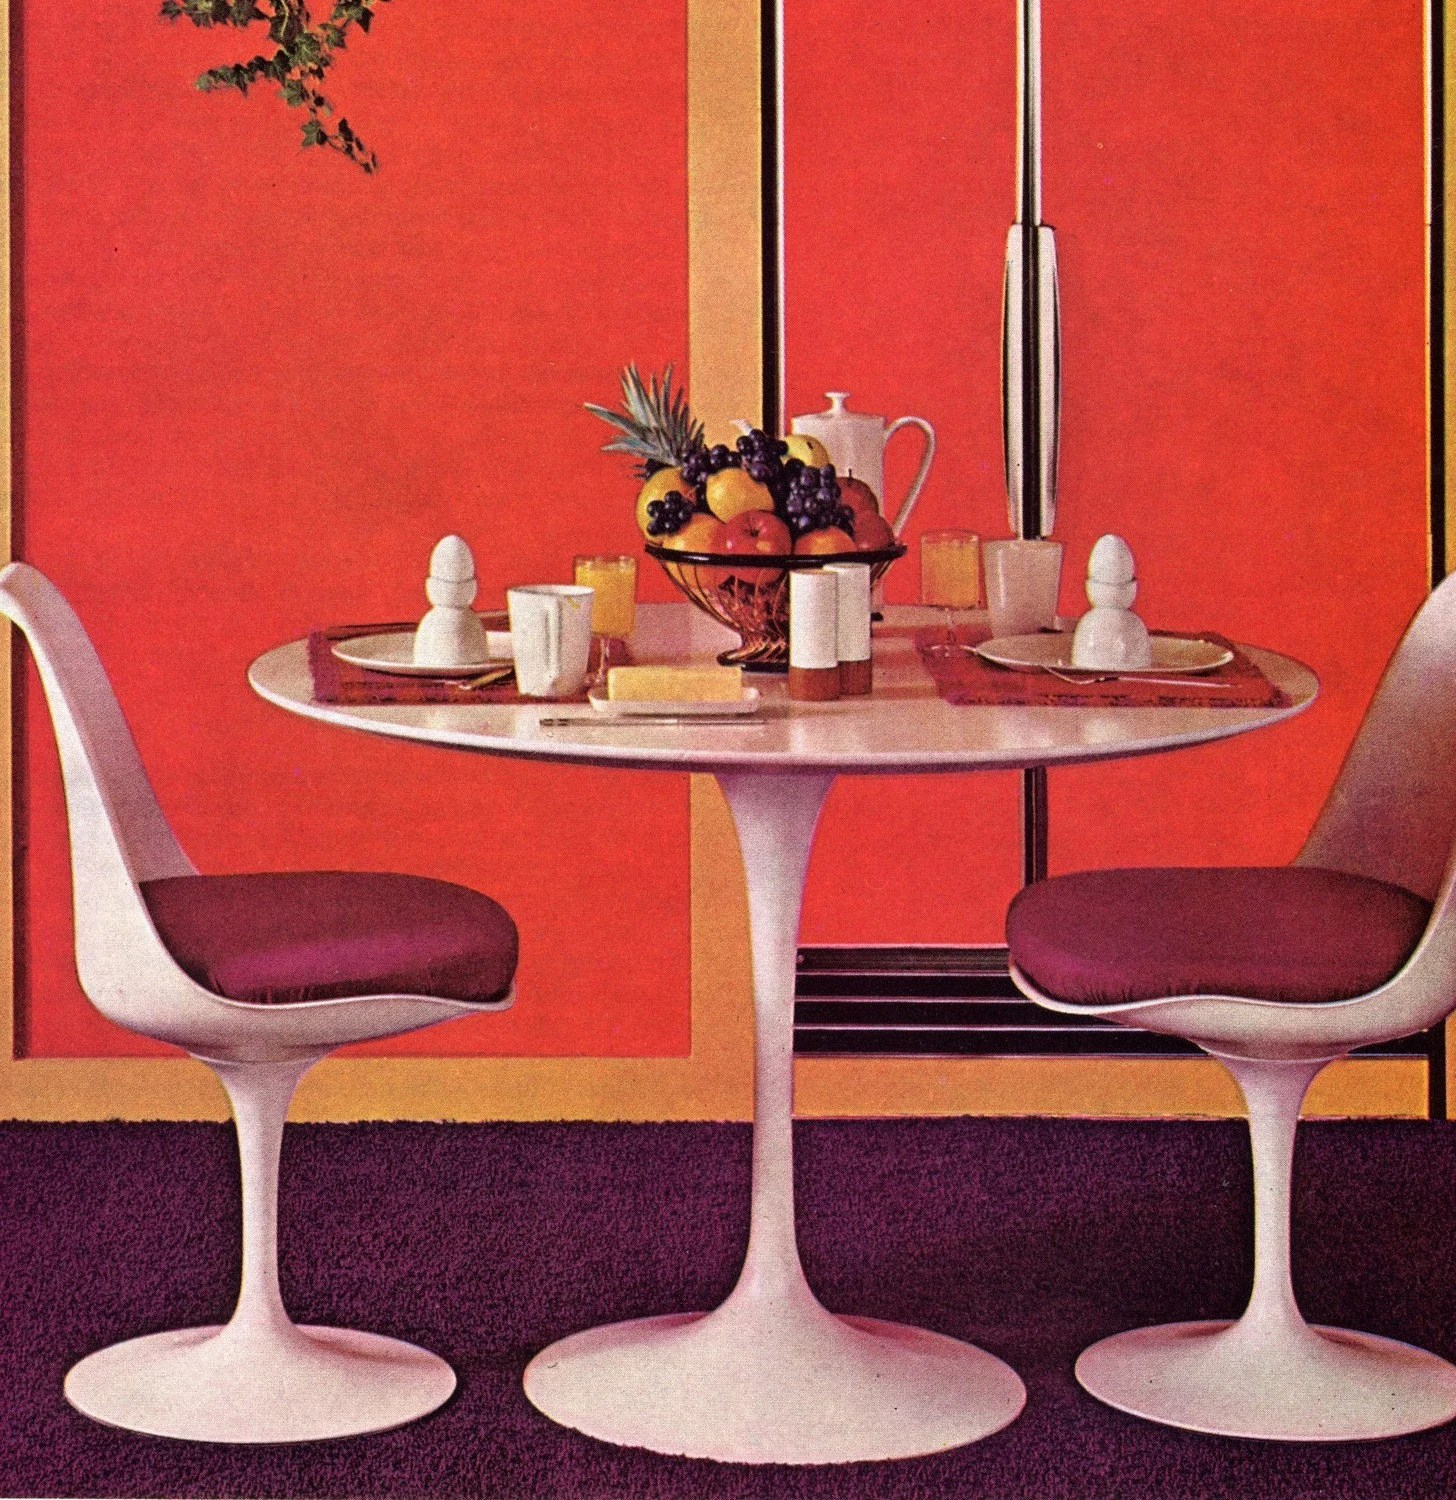 Tulip Table And Chairs Eero Saarinen Tulip Table And Chairs Vintage Image